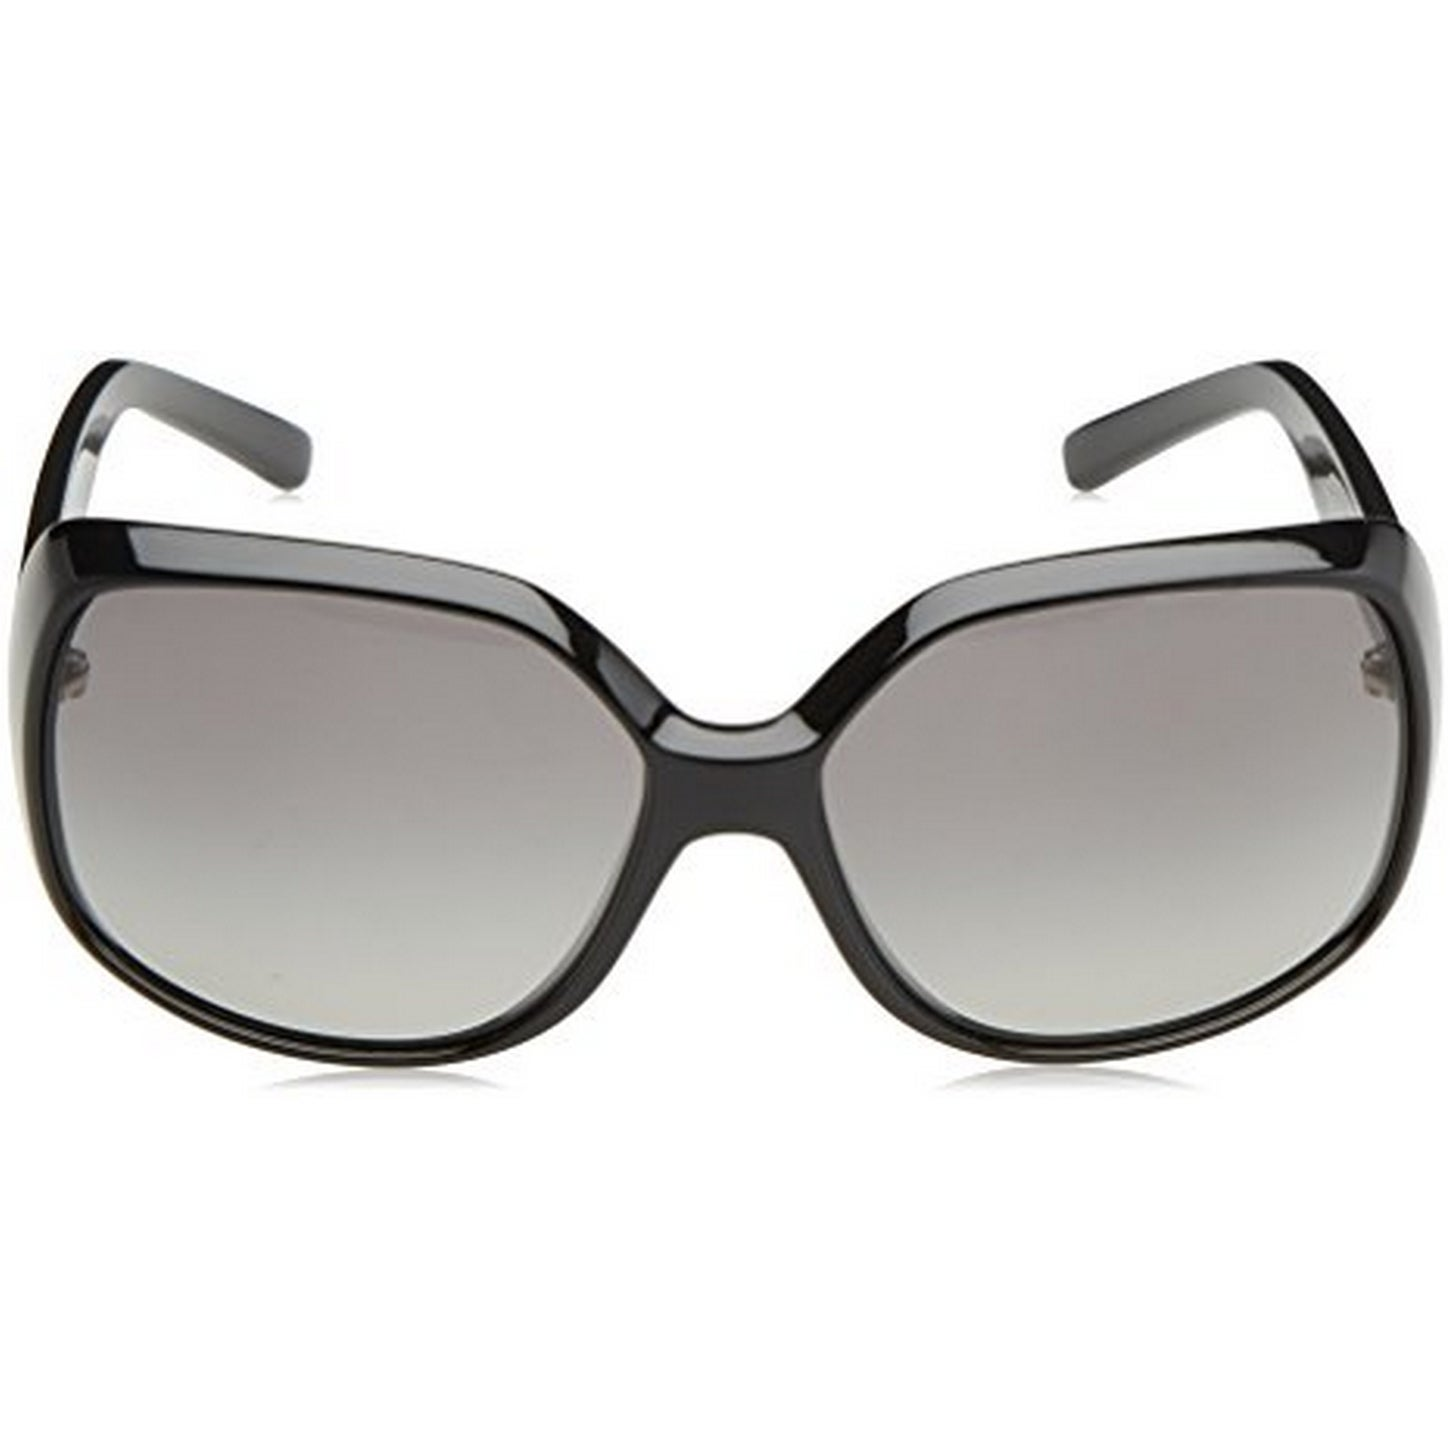 Shop Donna Karan DKNY Women s DY4101 300111 61 Square Plastic Black Grey  Sunglasses - Free Shipping Today - Overstock.com - 14692379 0687fdefcb06